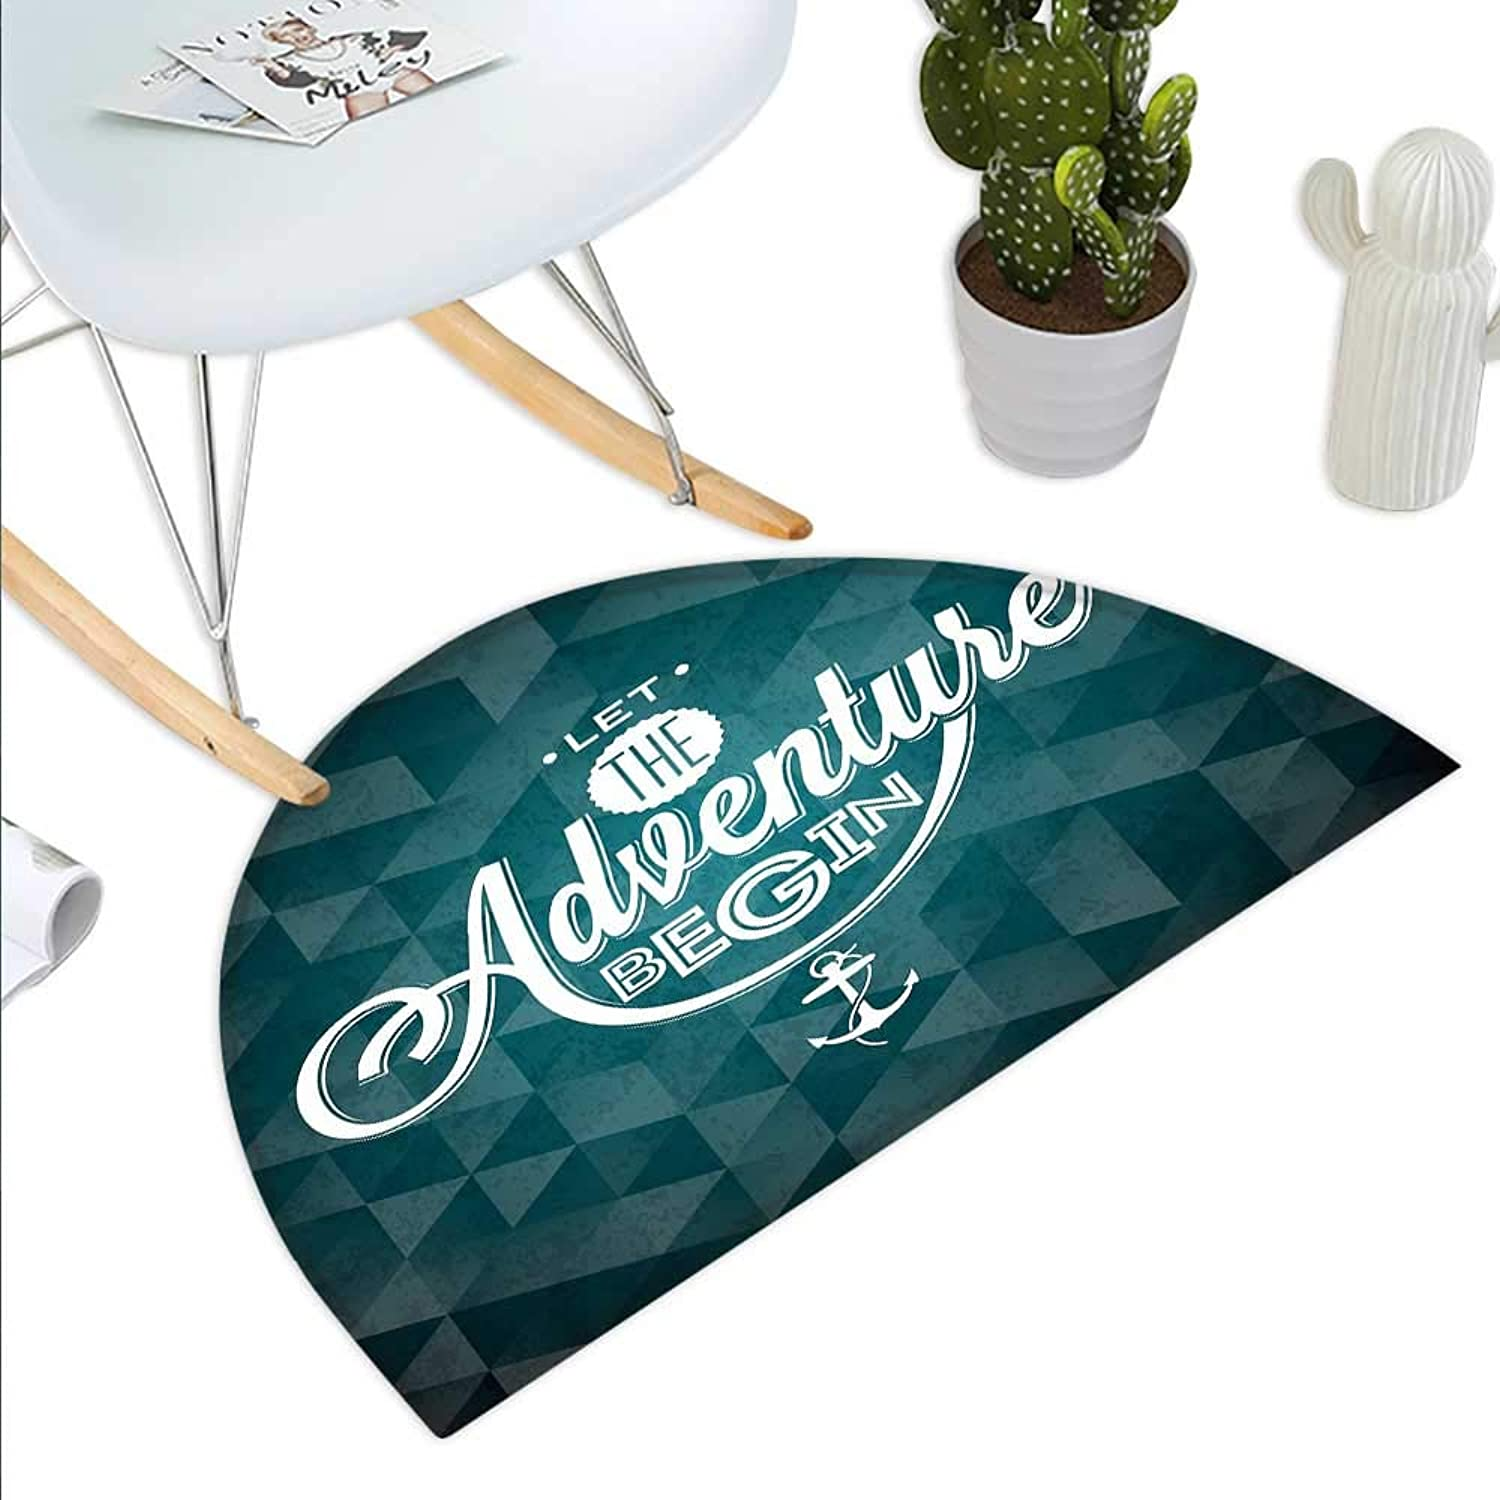 Adventure Semicircle Doormat Let The Adventure Begin Phrase on Abstract Fractal Triangle Background Halfmoon doormats H 39.3  xD 59  Petrol bluee White